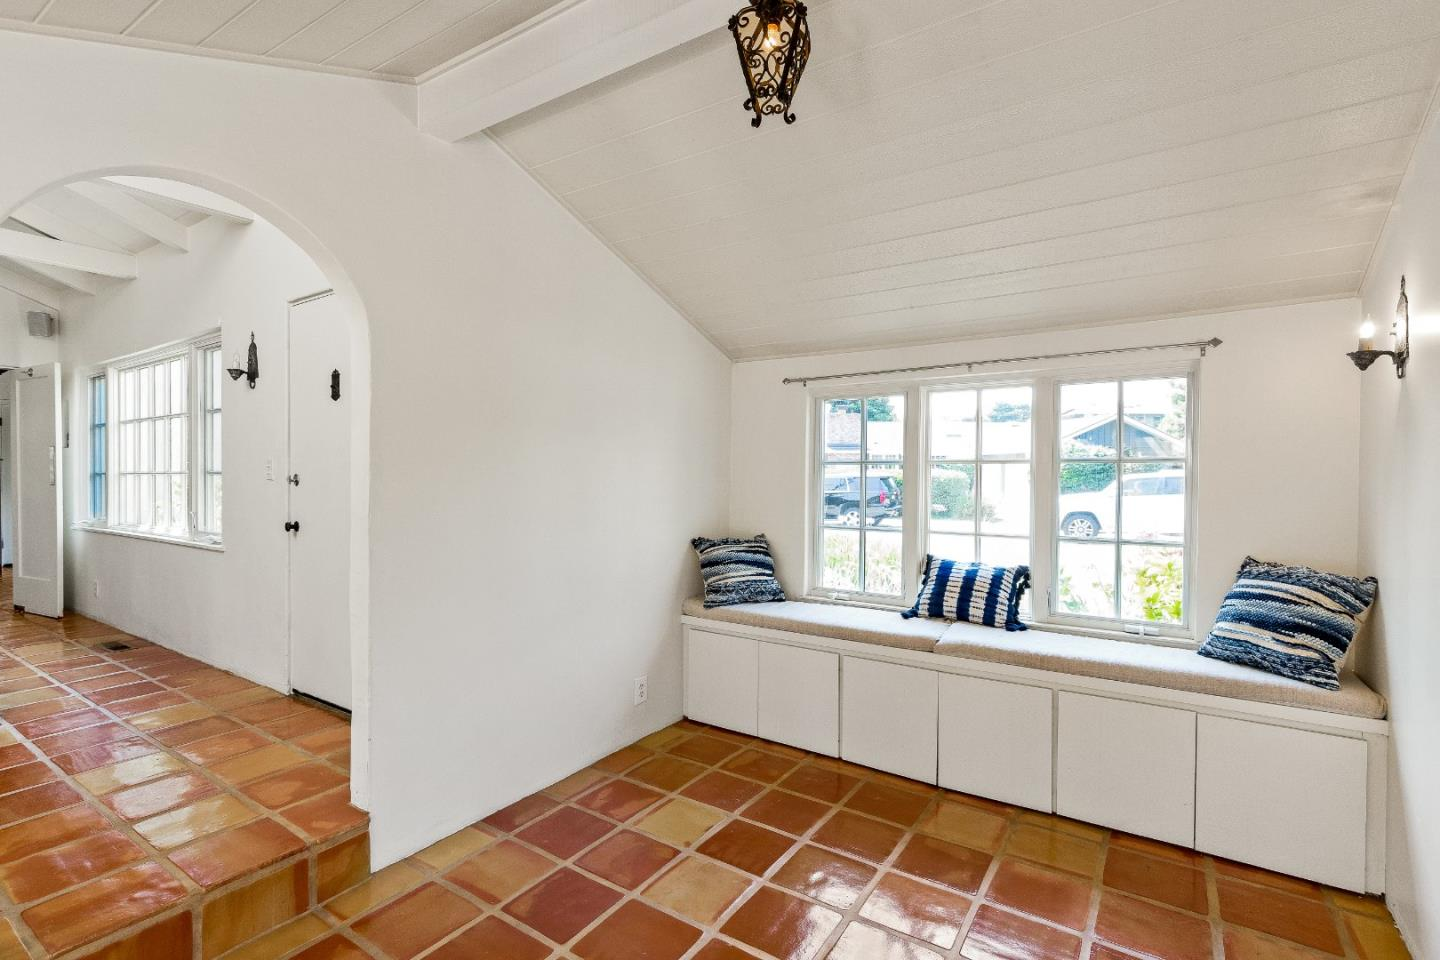 210 Appleton Drive Aptos, CA 95003 - MLS #: ML81718683